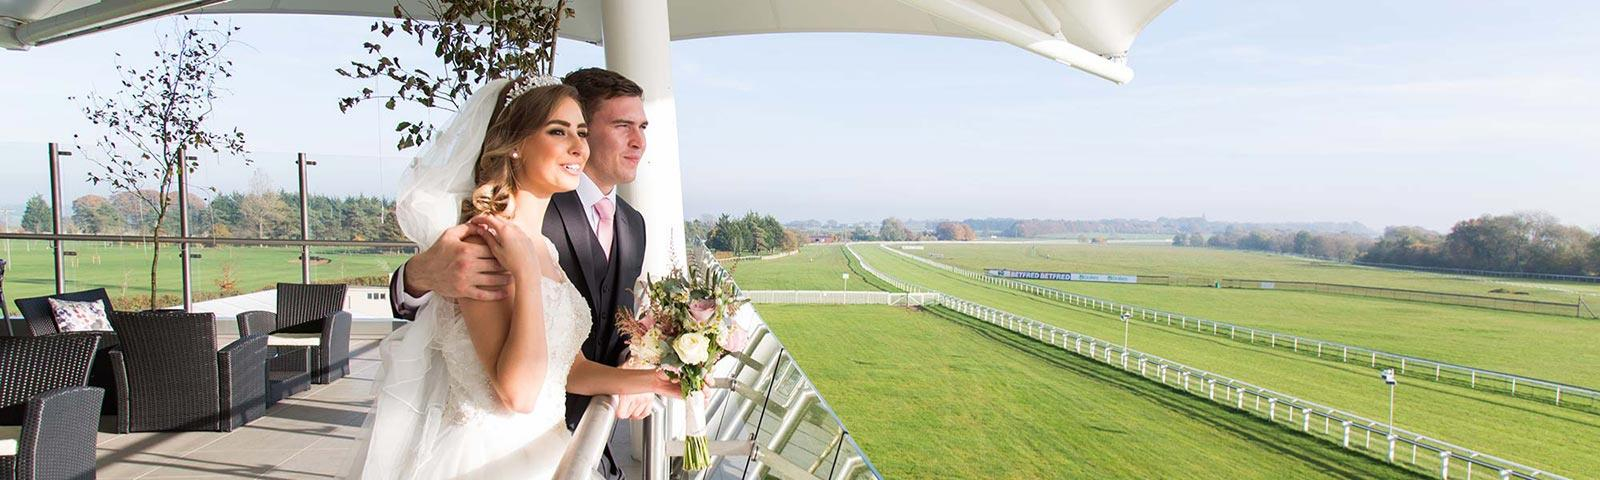 A couple of newlyweds standing on the Roof Garden terrace looking at the Bath Racecourse track.